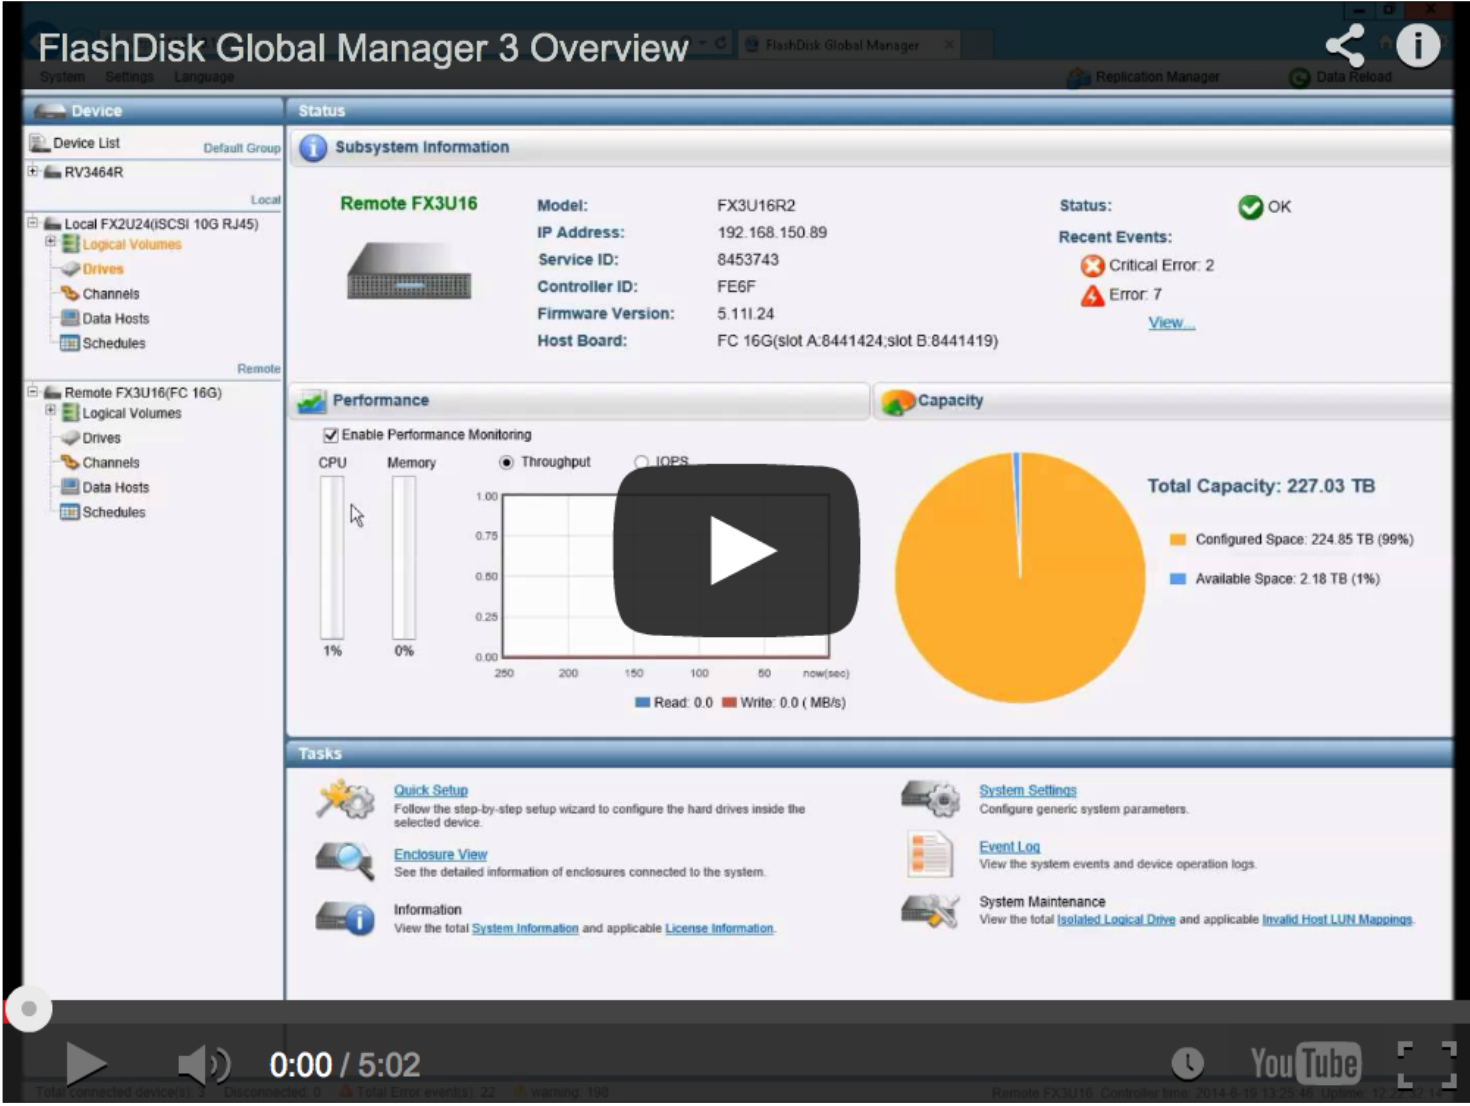 Play FlashDisk Global Manager 3 Overview Video